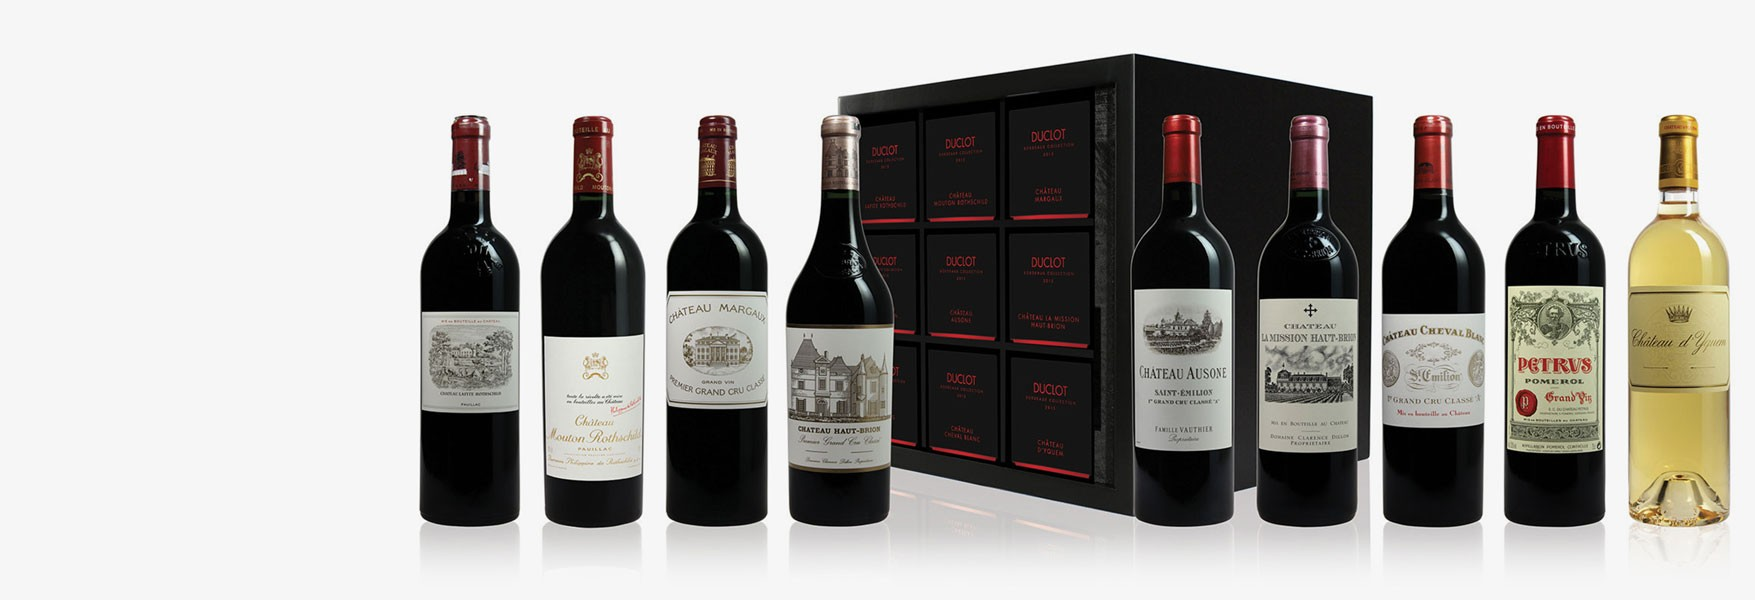 Duclot Bordeaux Collection 2015